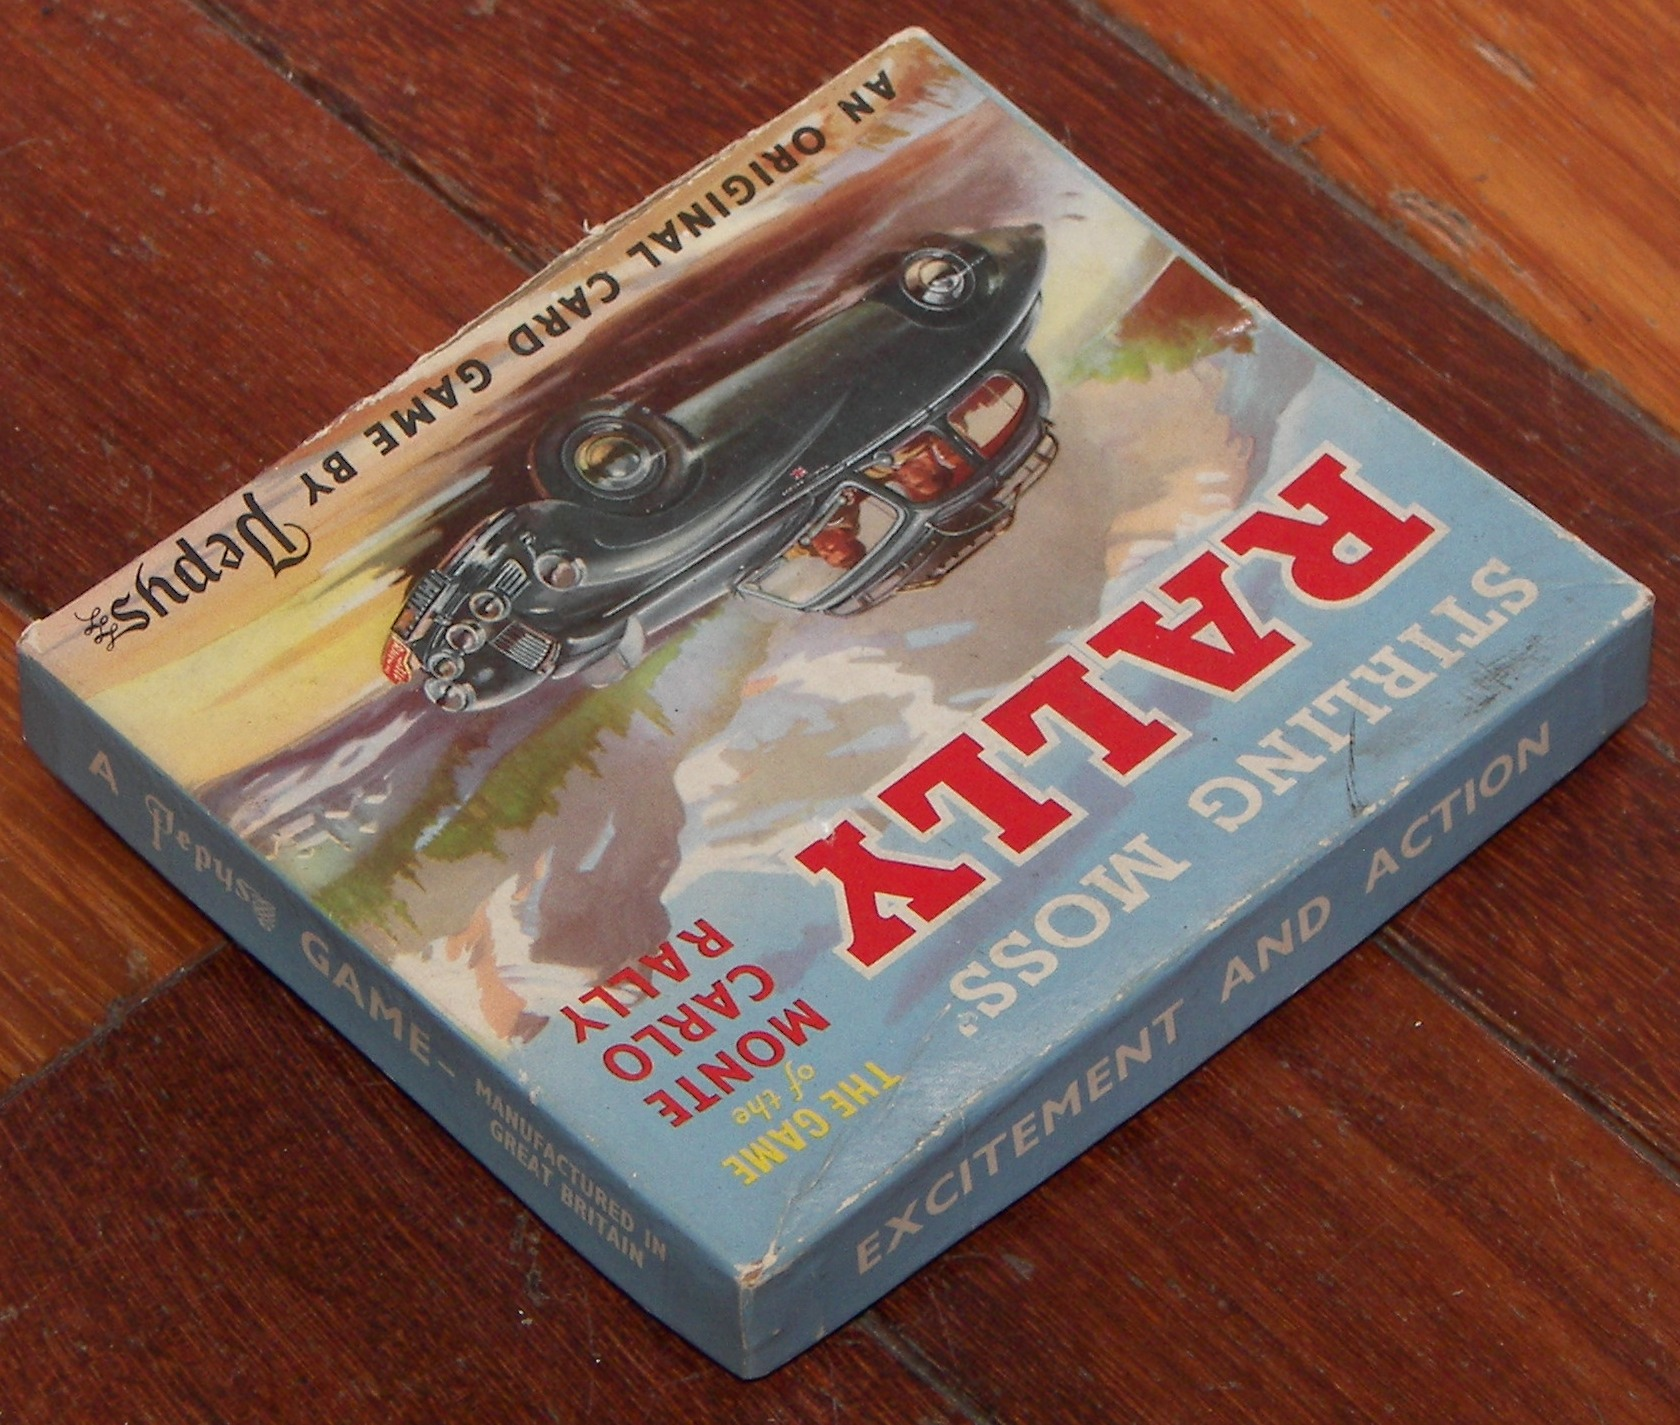 Vintage Games 2-6 Players The Game of the Monte Carlo Rally Pepys Series